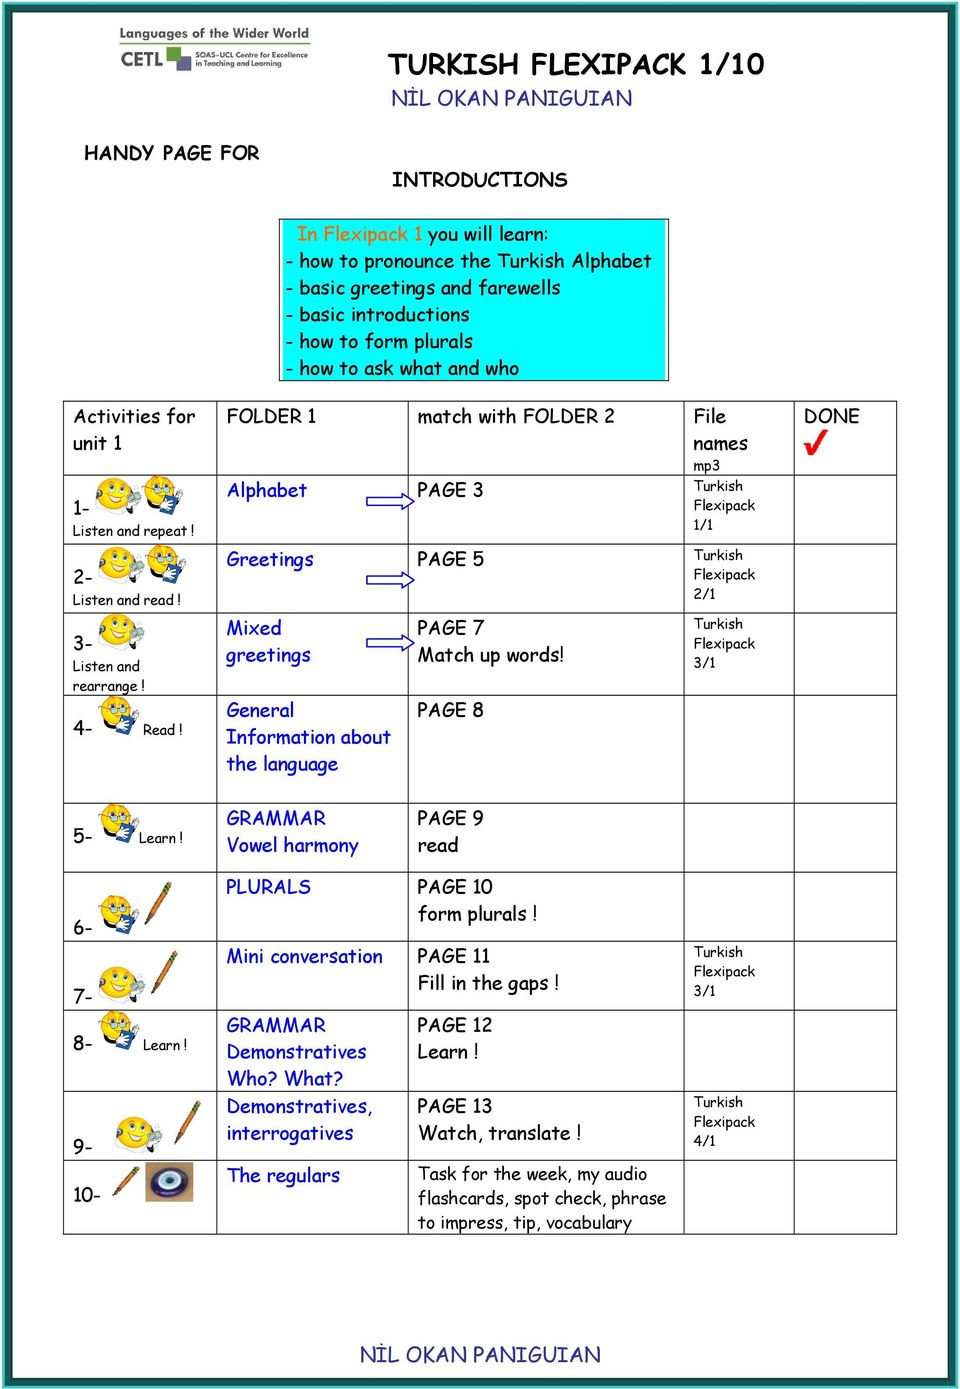 FOLDER 1 match with FOLDER 2 File names mp3 Alphabet PAGE 3 Turkish Flexipack 1/1 Greetings PAGE 5 Turkish Flexipack 2/1 DONE 3- Listen and rearrange! Mixed greetings PAGE 7 Match up words!